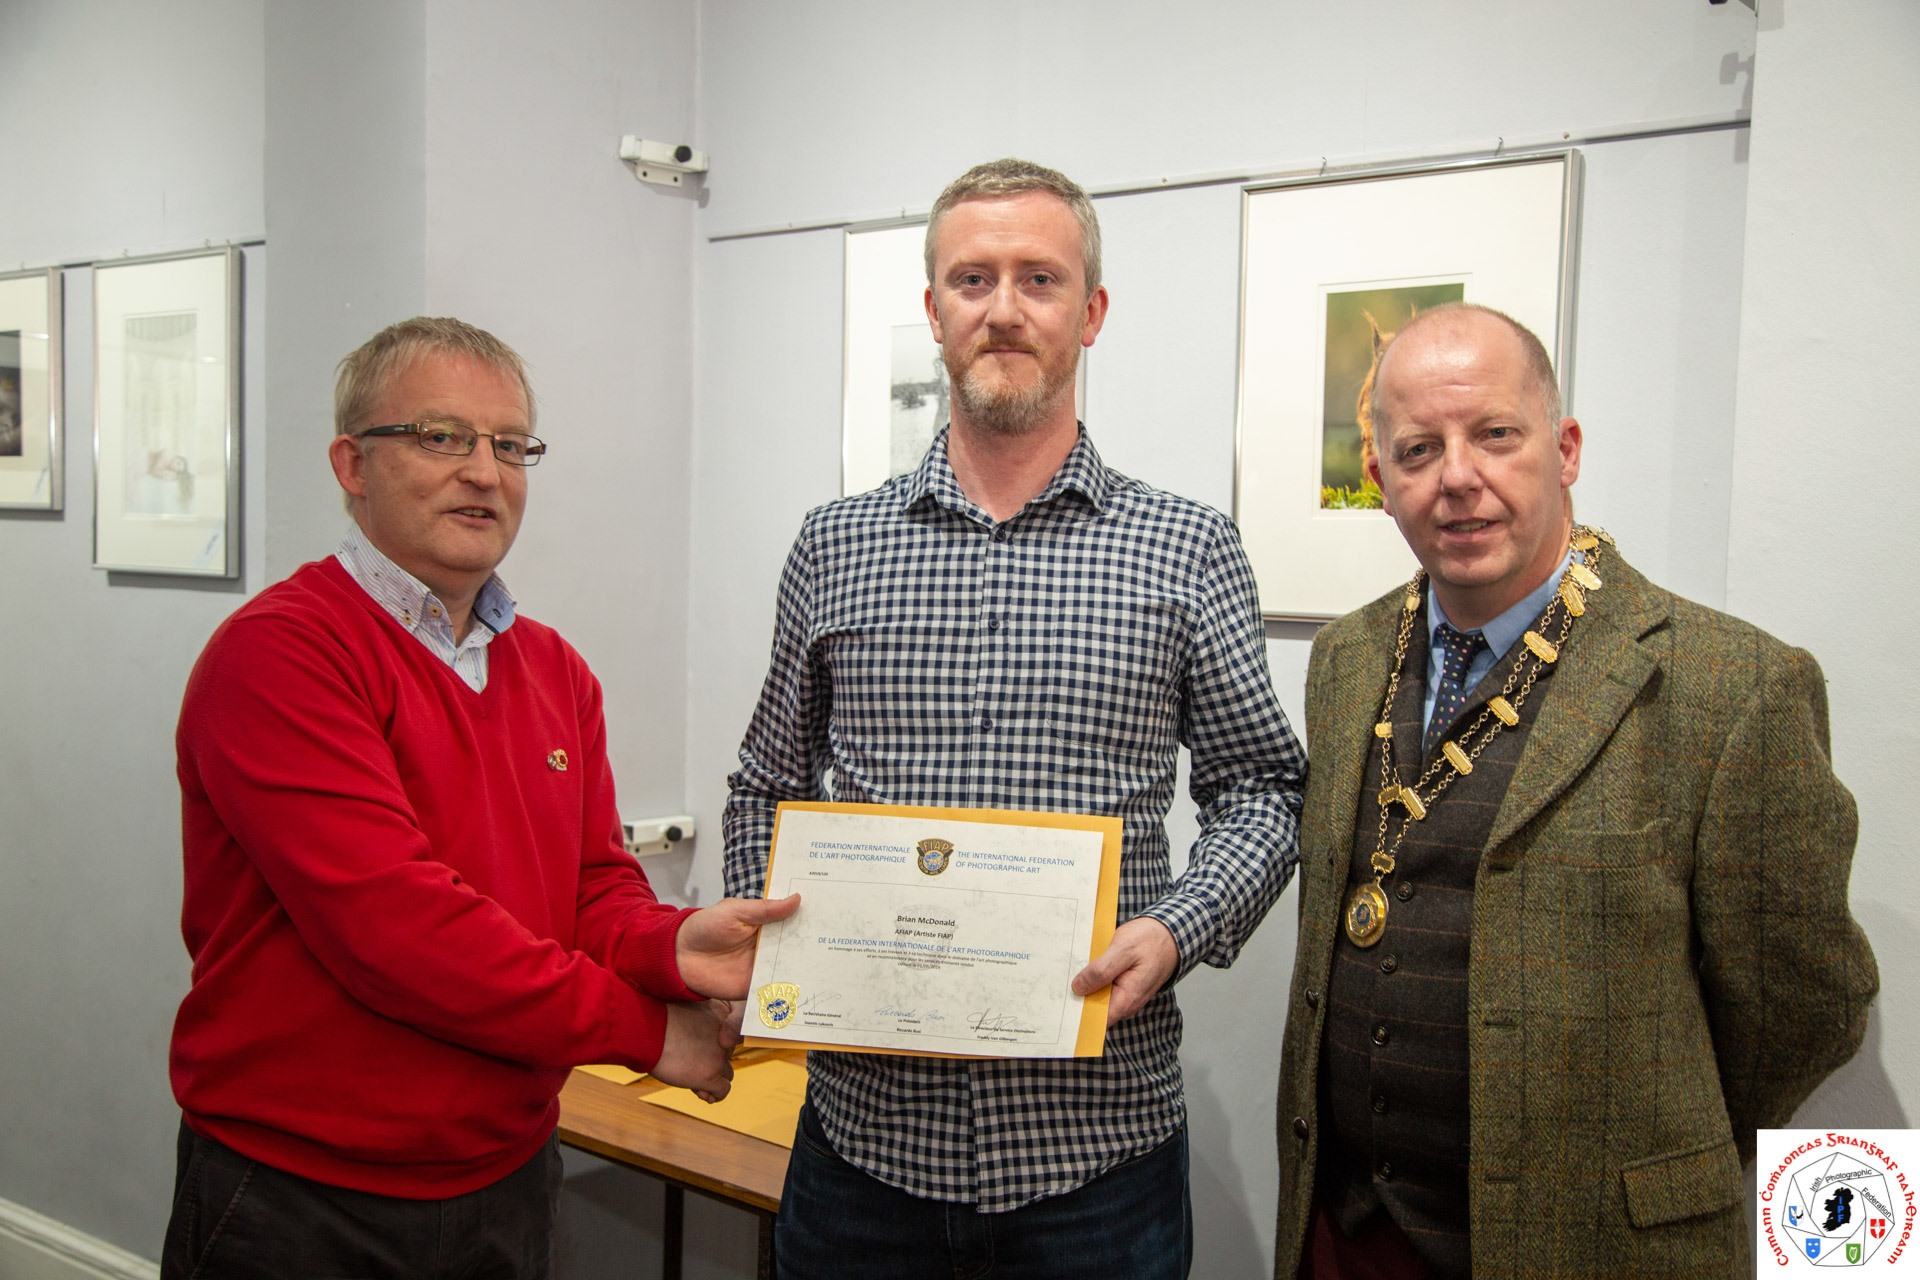 - Paul Stanley Liaison Officer FIAP & Dom Reddin President IPF, presenting Brian McDonald with his AFIAP distinction certificate.